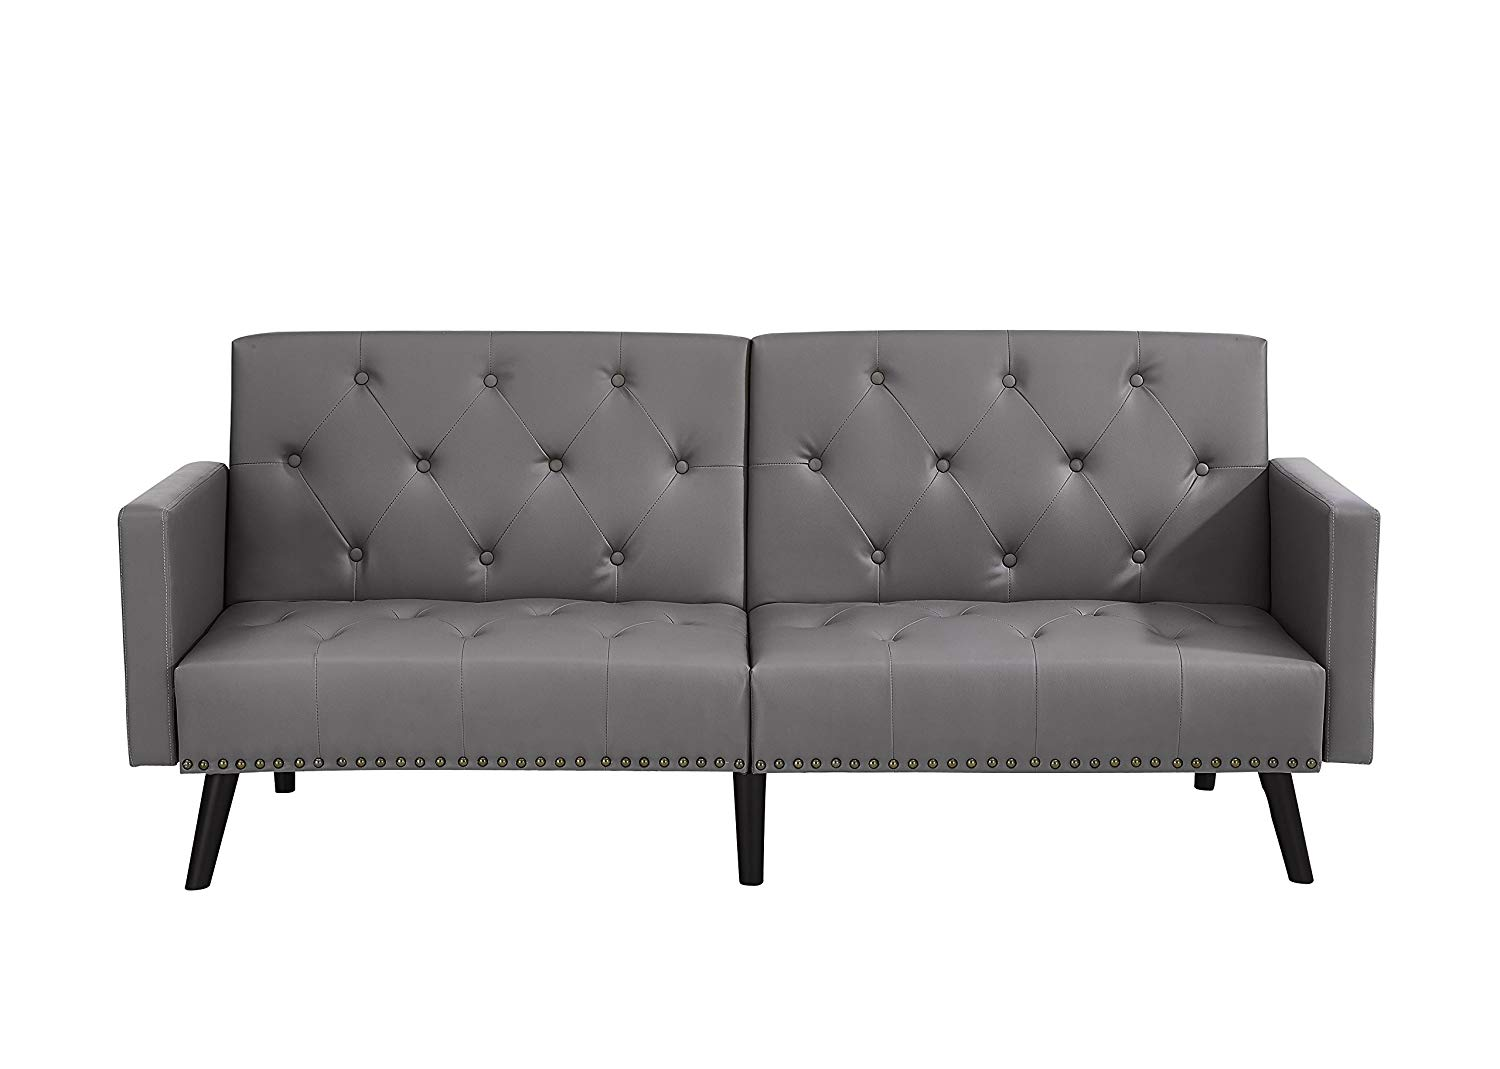 Manhattan Convertible Futon